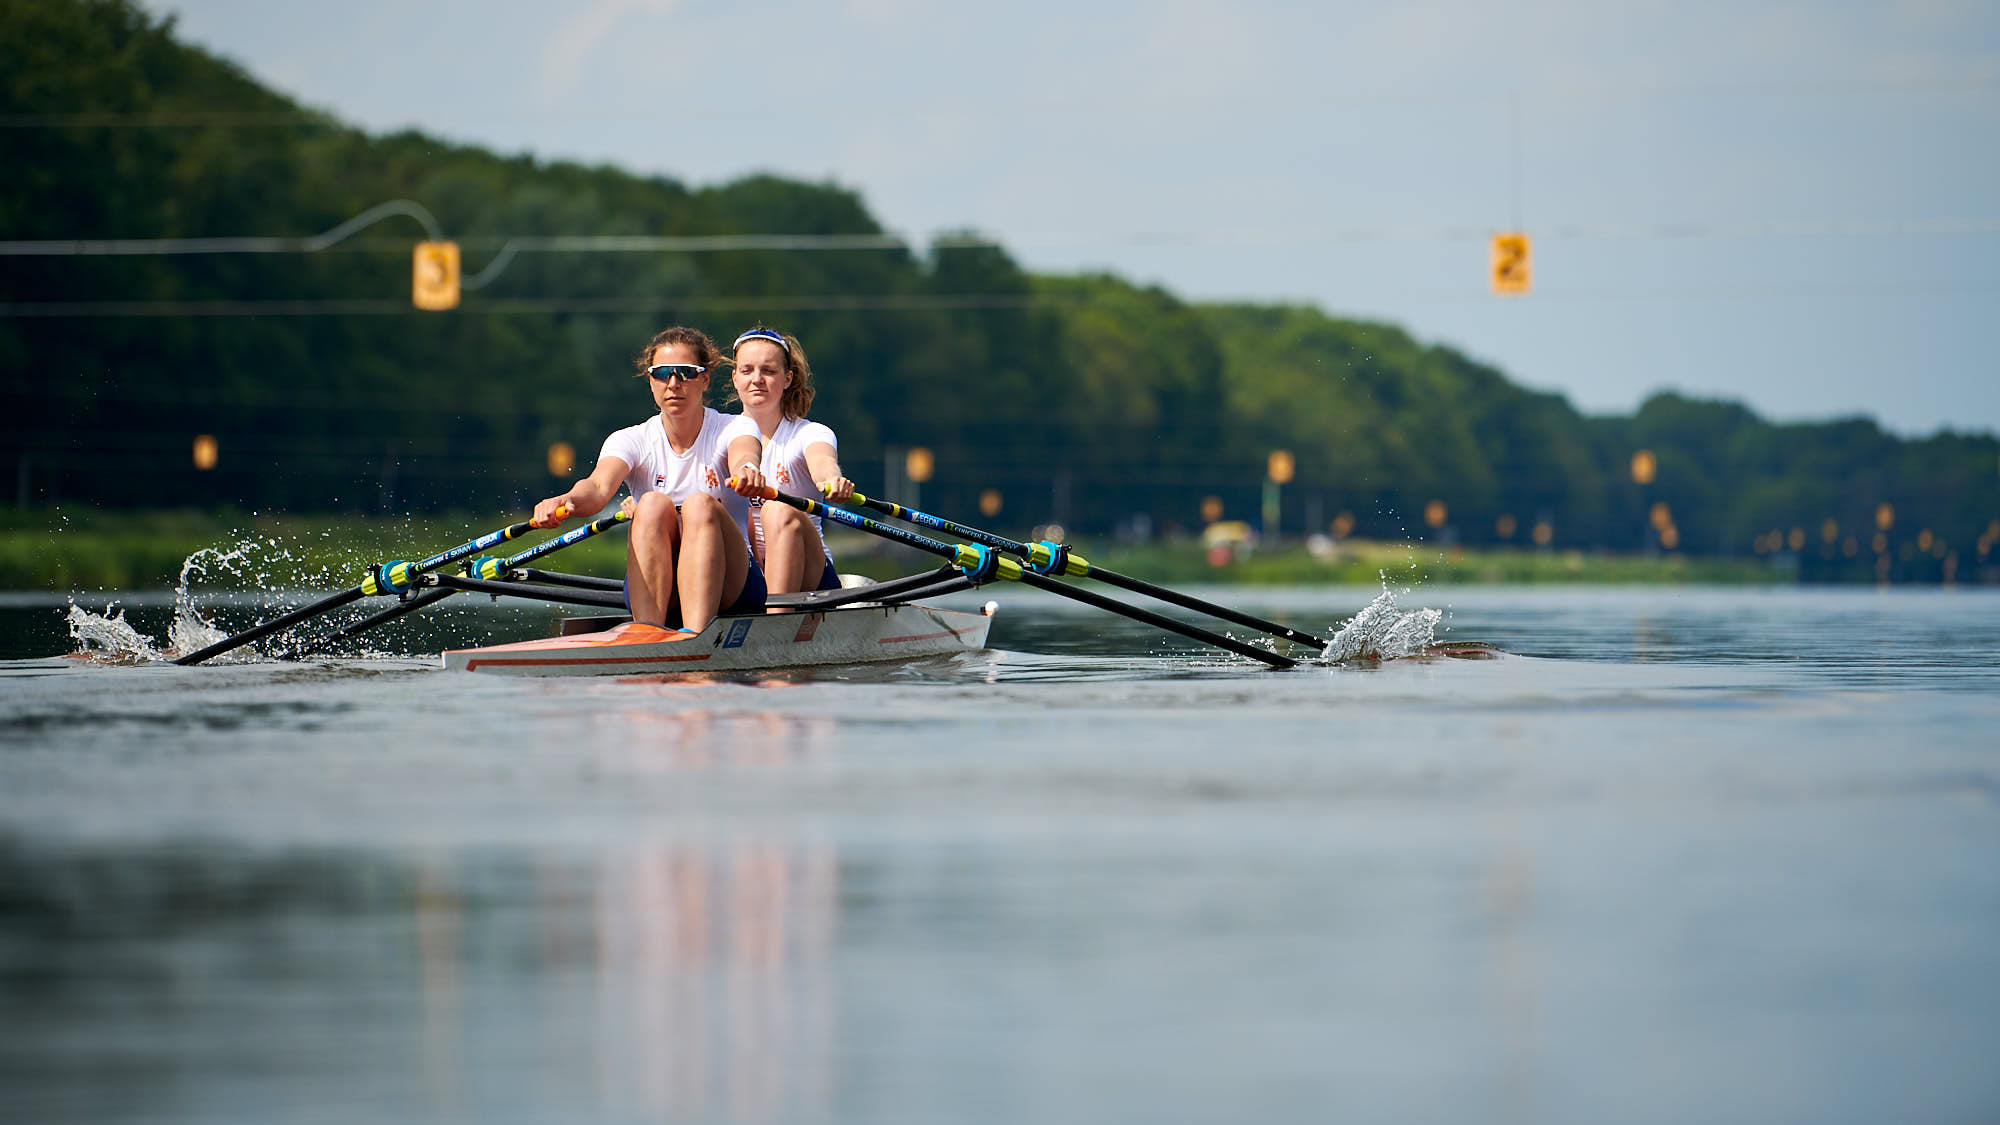 Ilse Paulis and Marieke Keijser rowing at the iconic Amsterdam Bosbaan